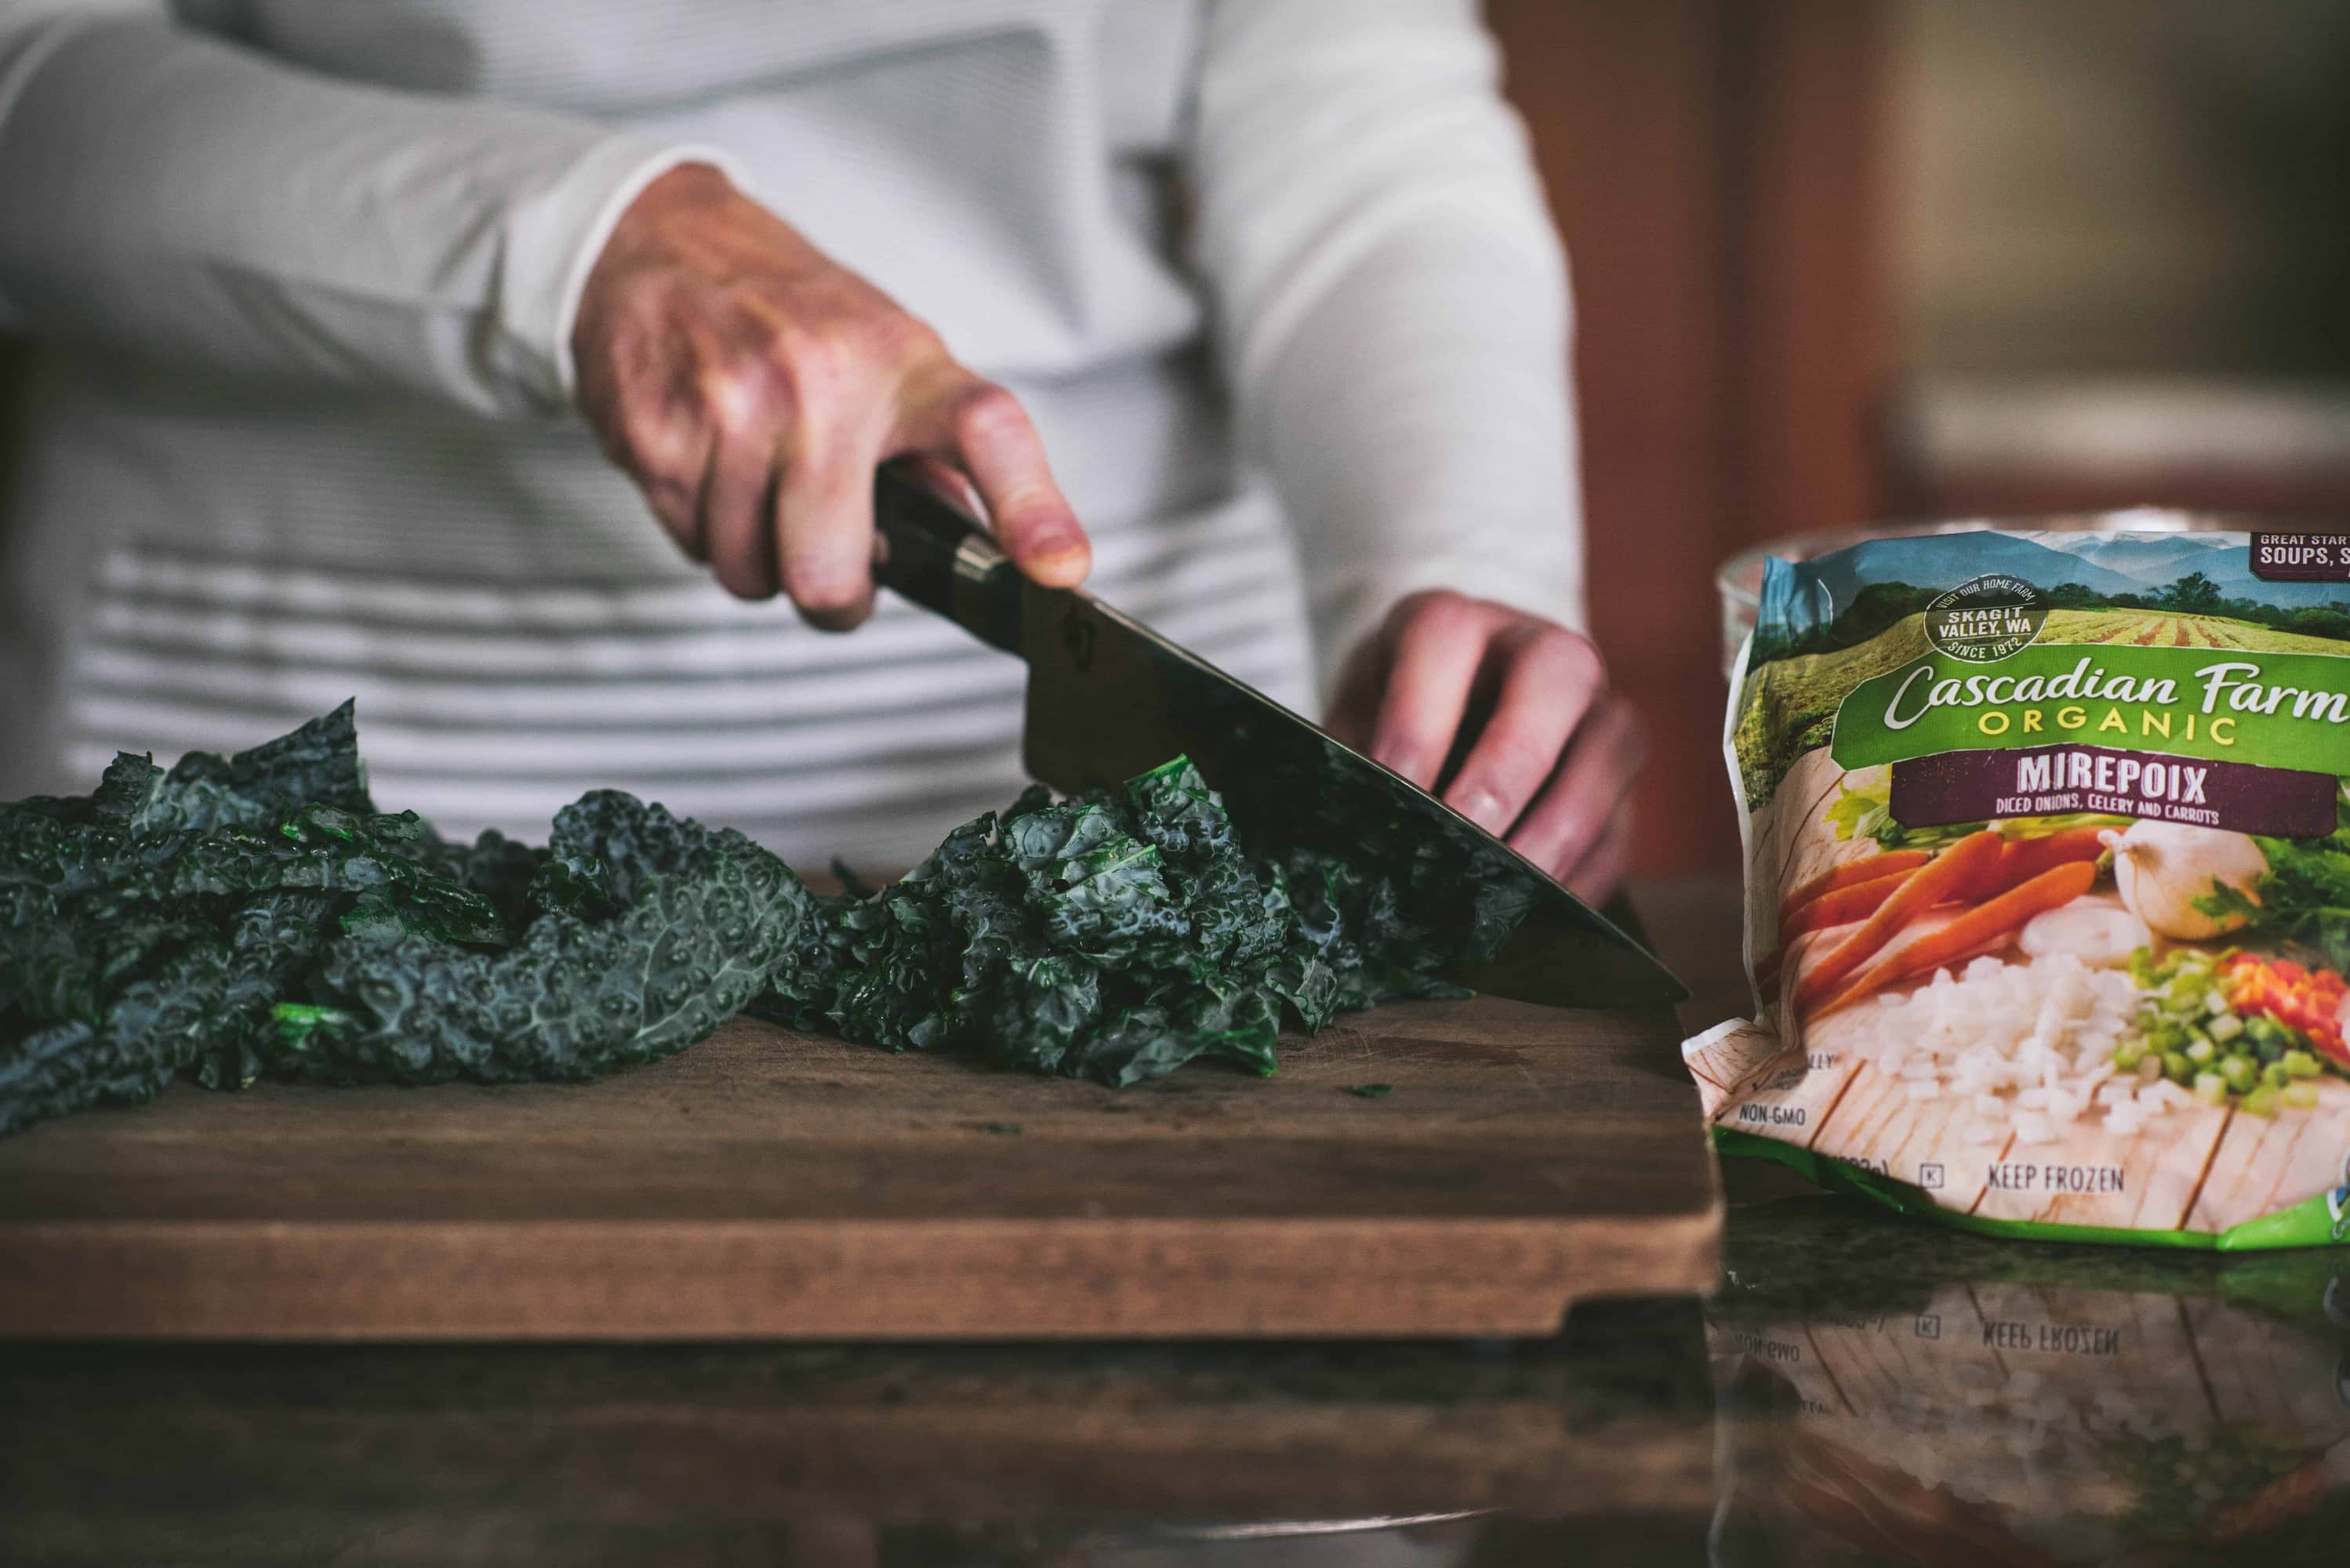 Side view of person slicing kale on cutting board